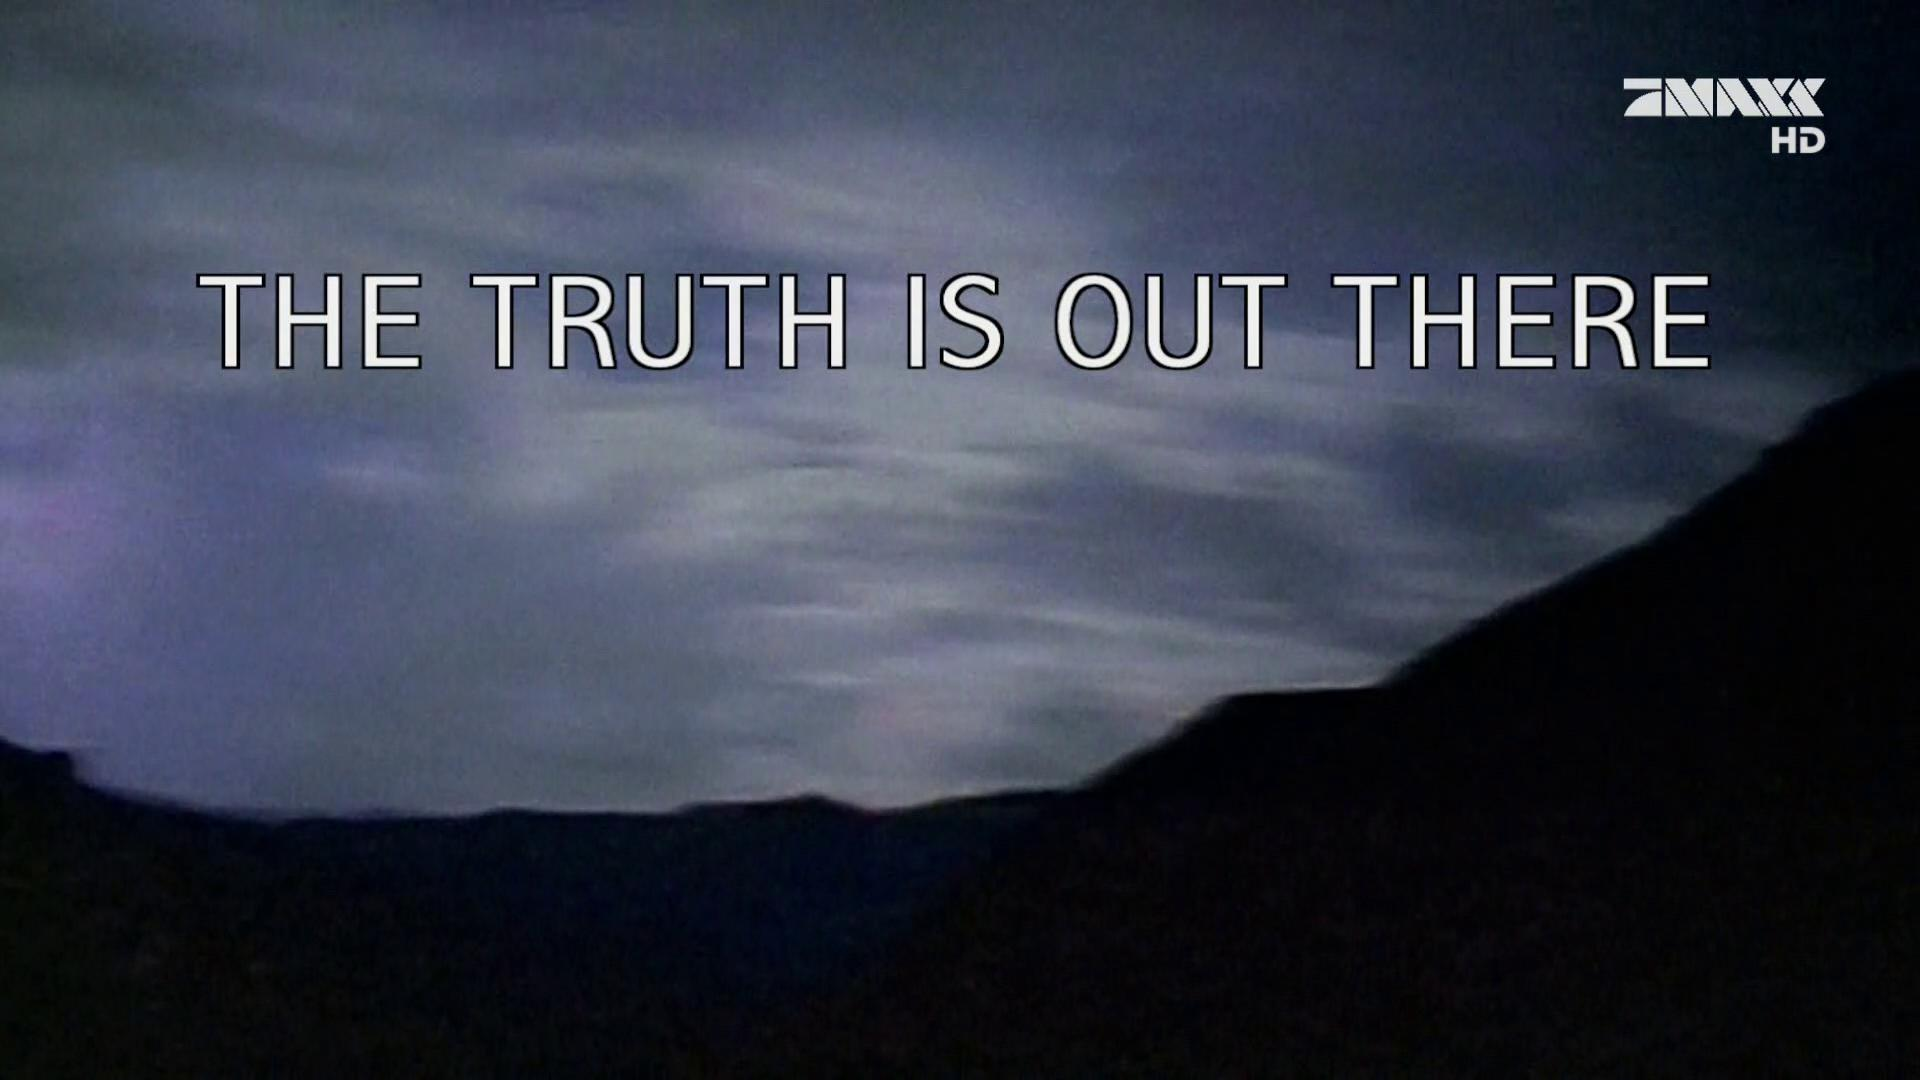 Want To Believe Wallpaper 1920x1080 X-files (series) coming to blu ...